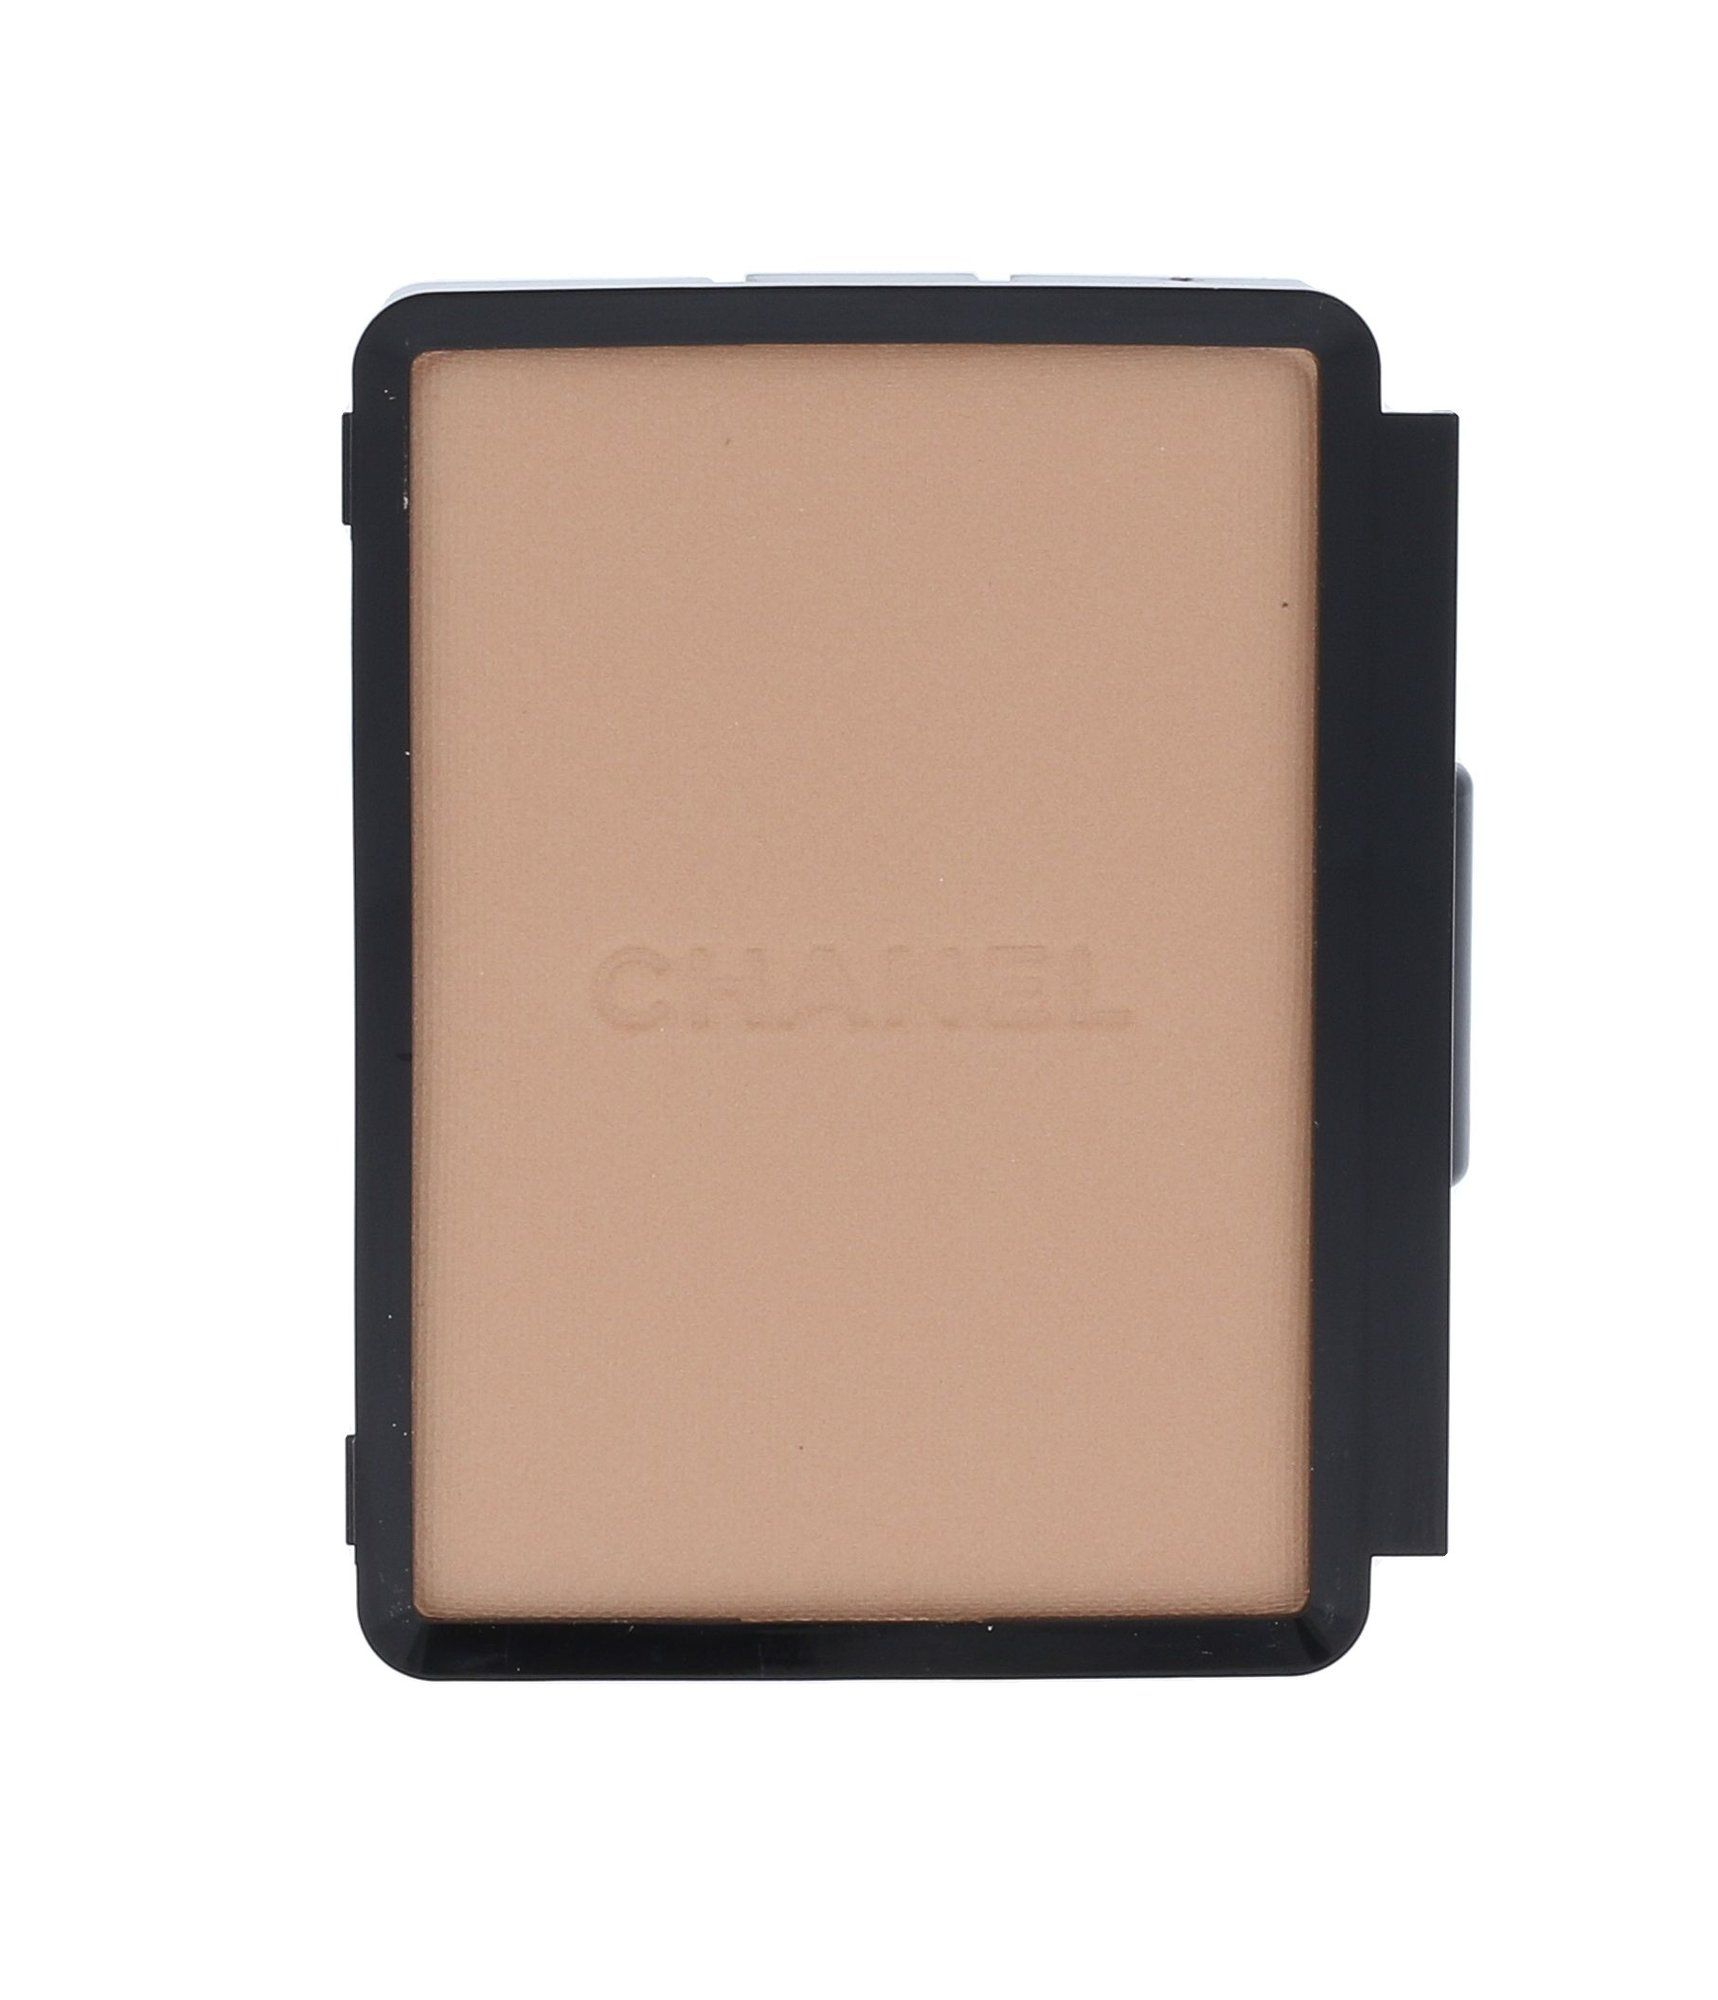 Chanel Vitalumiere Compact Douceur Cosmetic 13ml 40 Beige